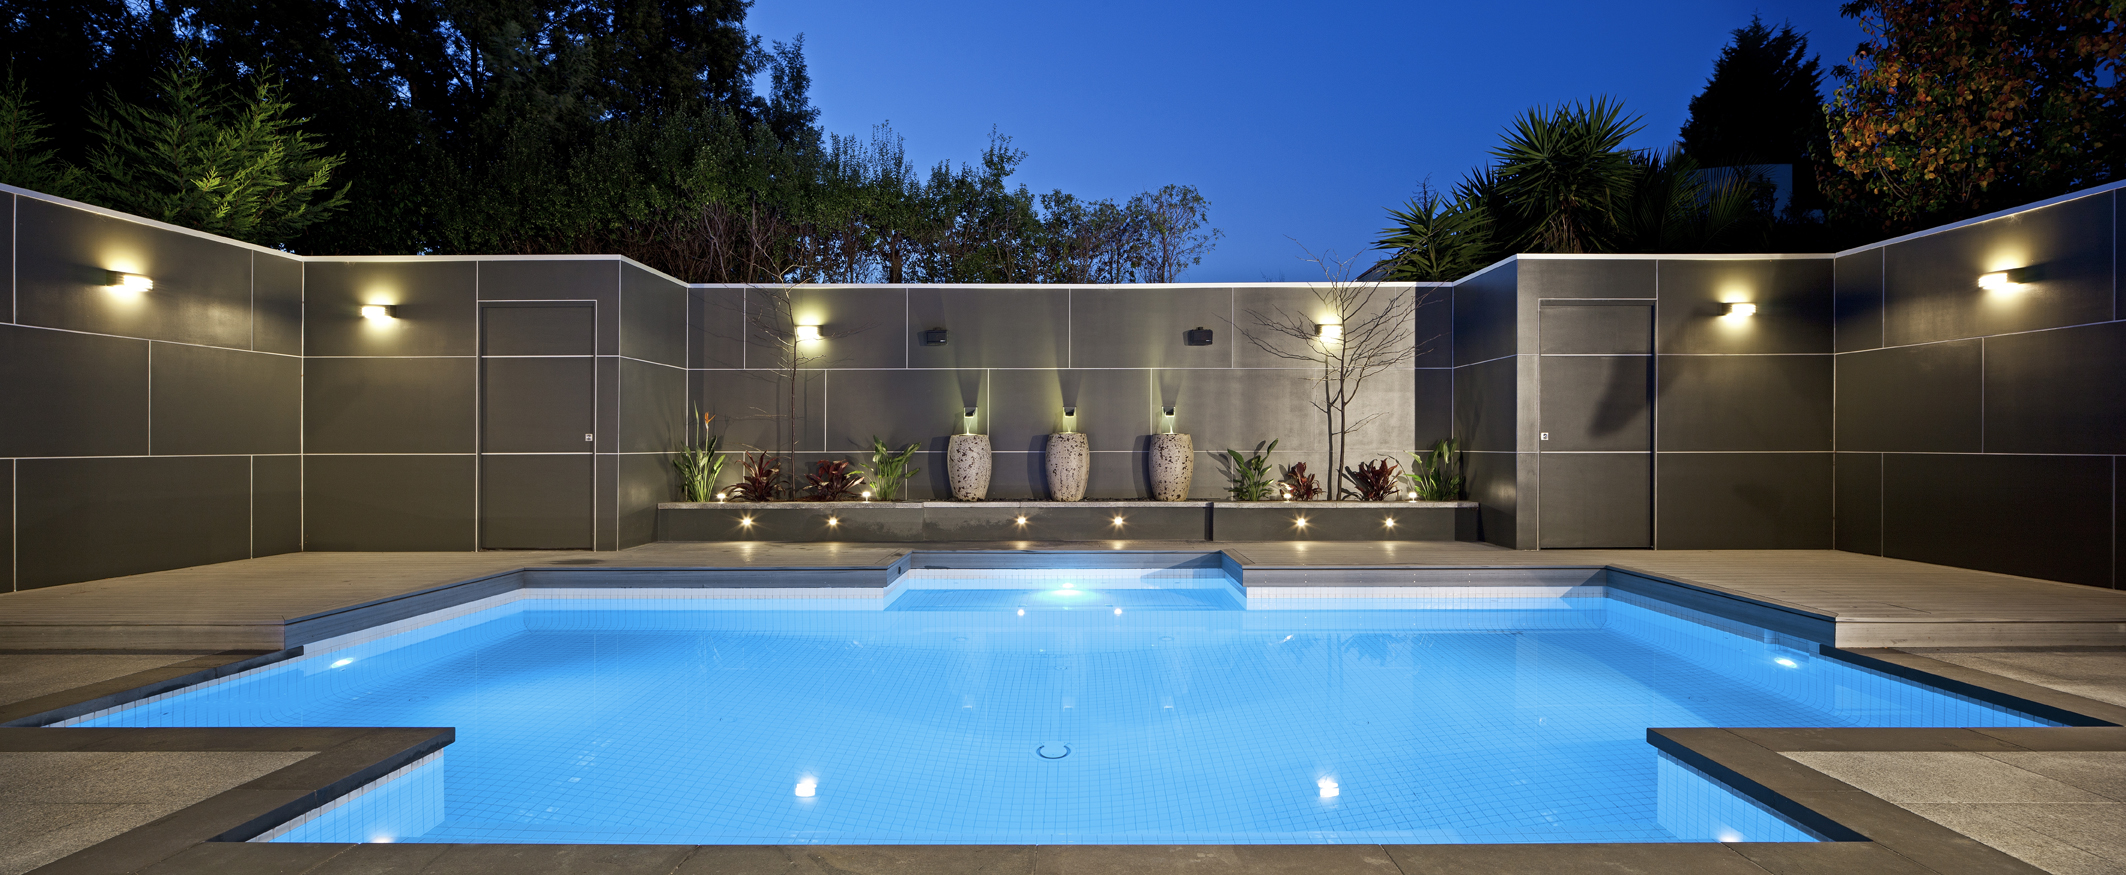 Family pool caulfield north neptune pools for Courtyard designs with spa